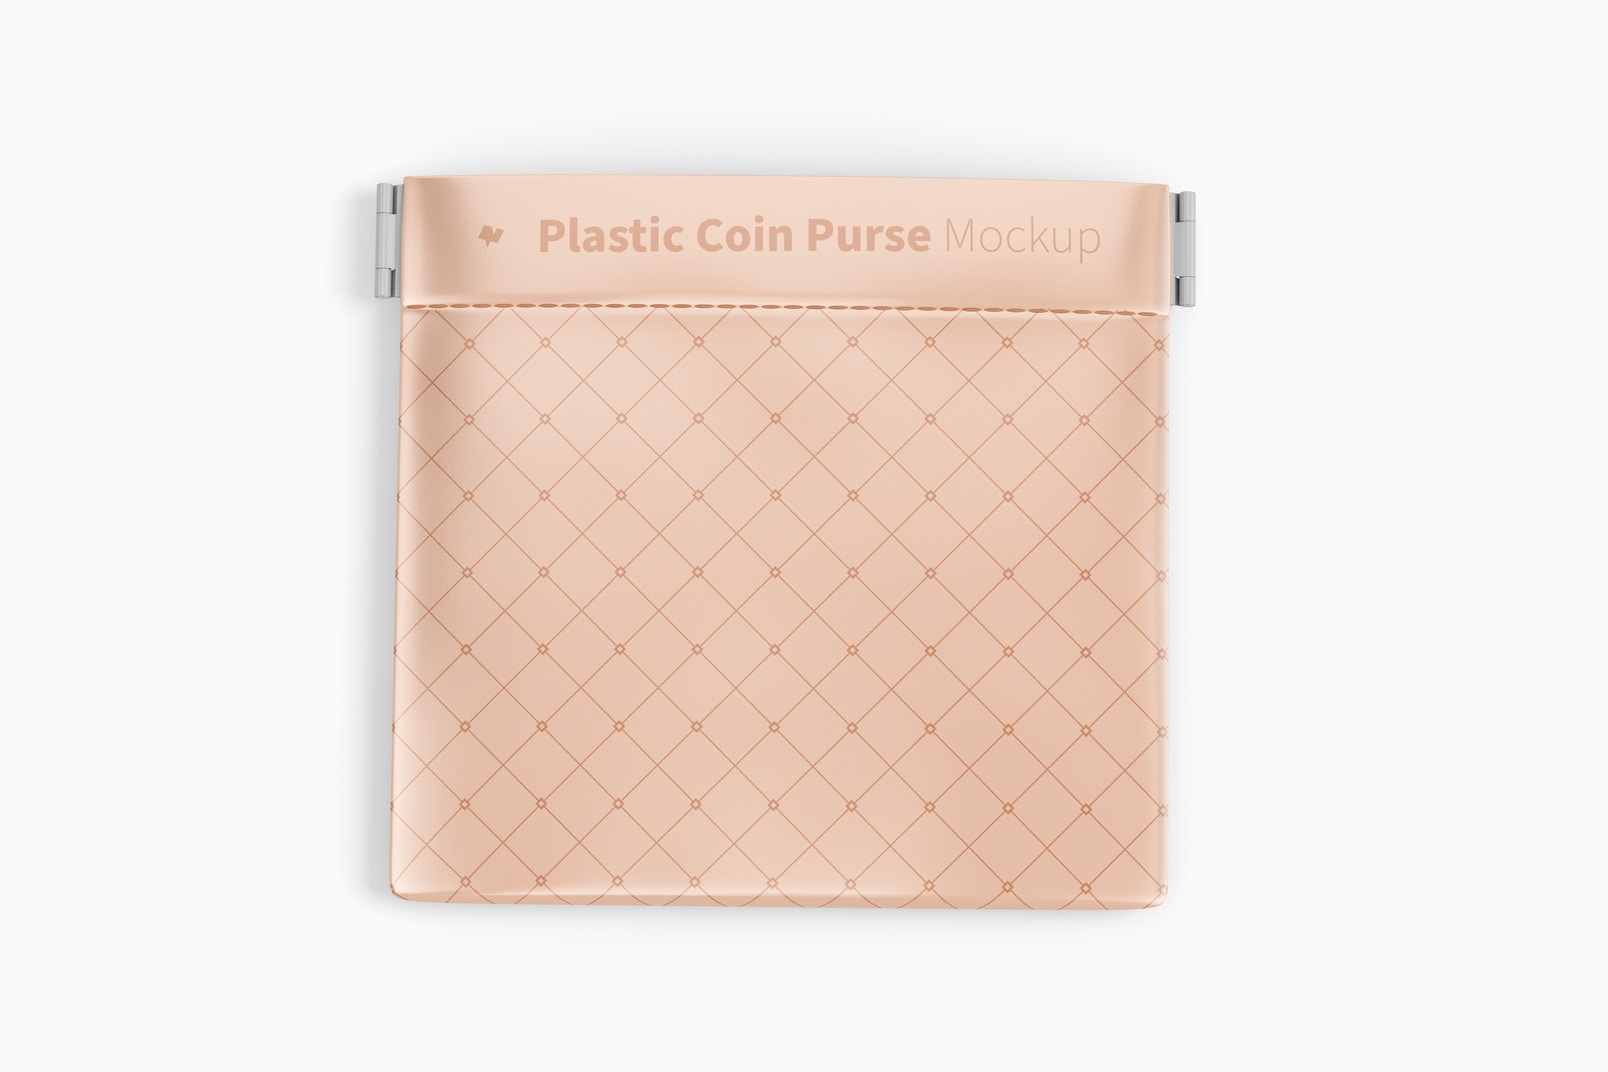 Plastic Coin Purse Mockup, Top View